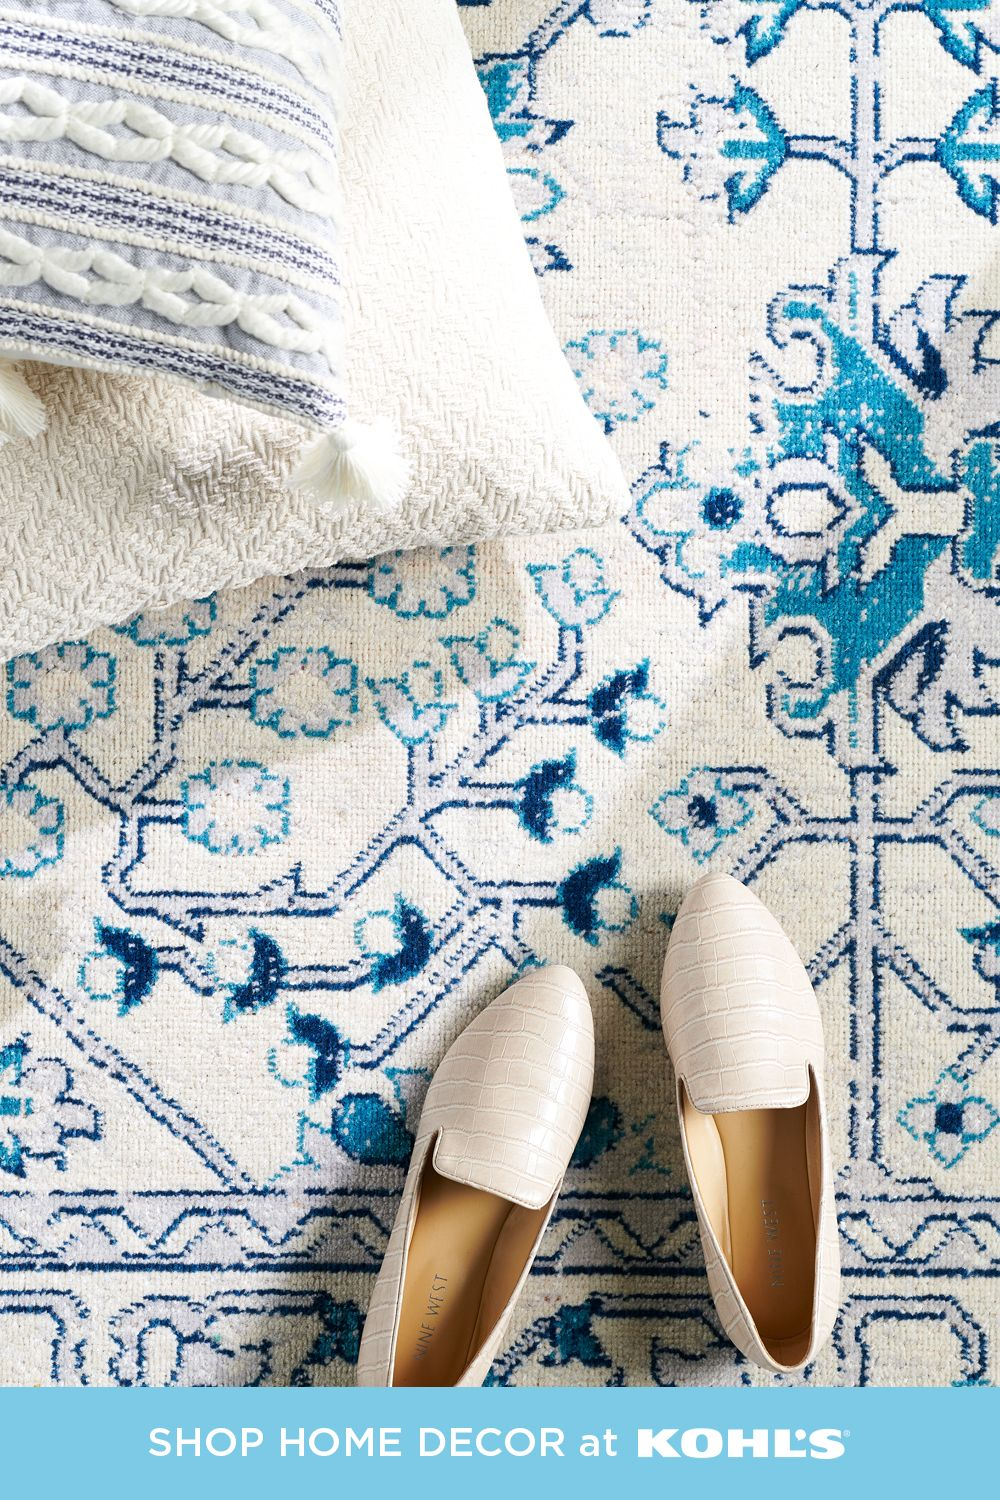 Find New Rugs And Throw Pillows At Kohl S En 2020